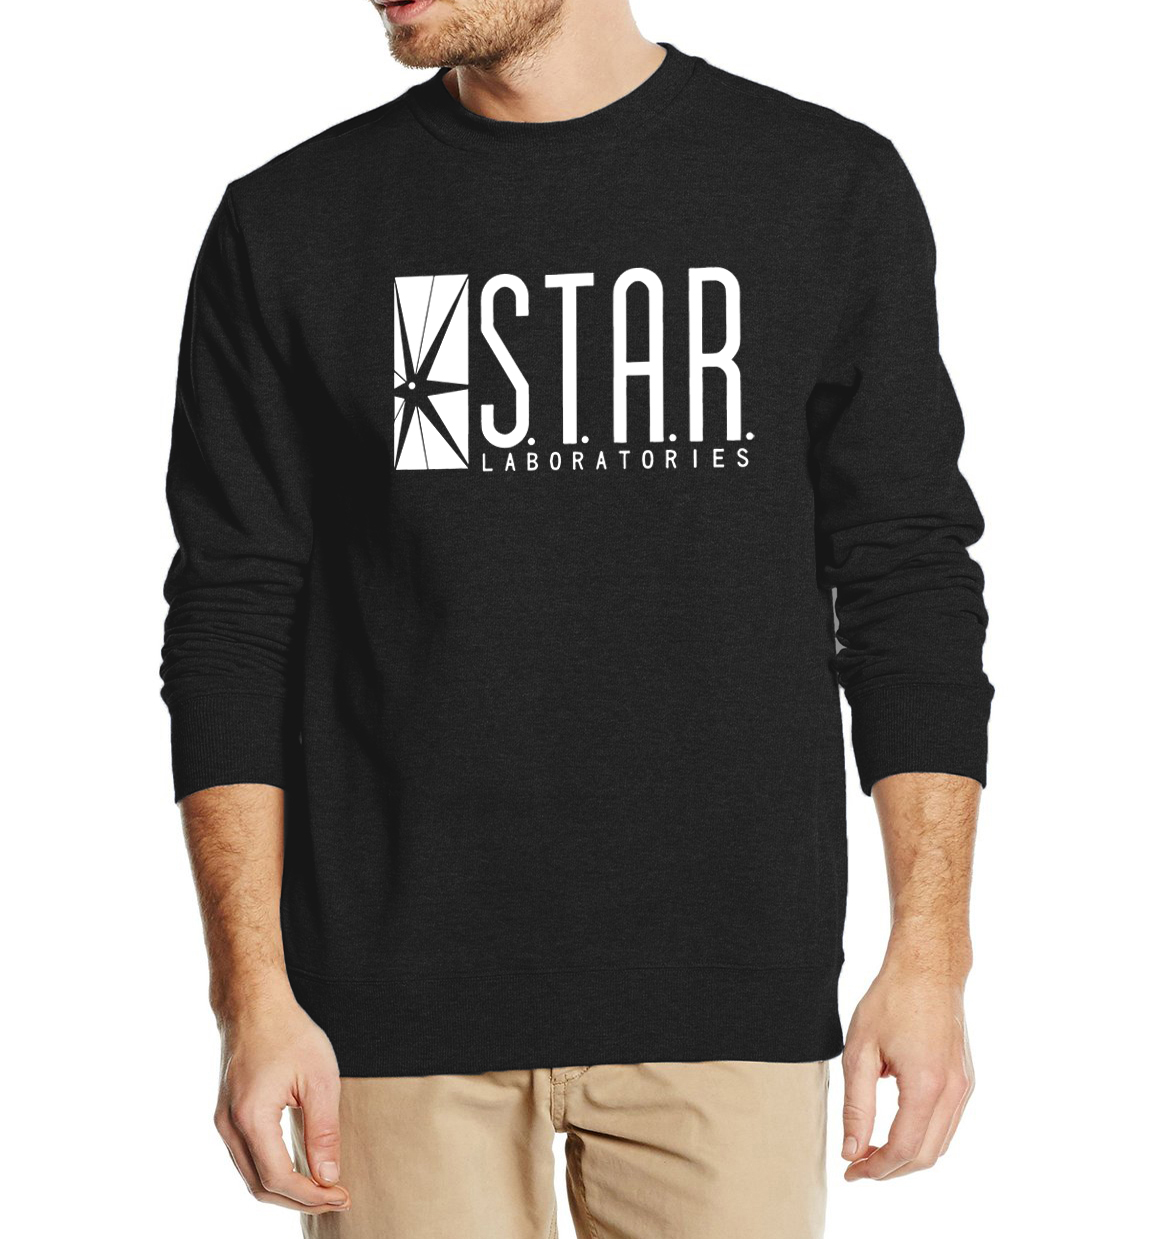 Superman Series Men Sweatshirt STAR S.T.A.R.labs autumn winter  2018 new fashion hoodies cool streetwear tracksuit high quality